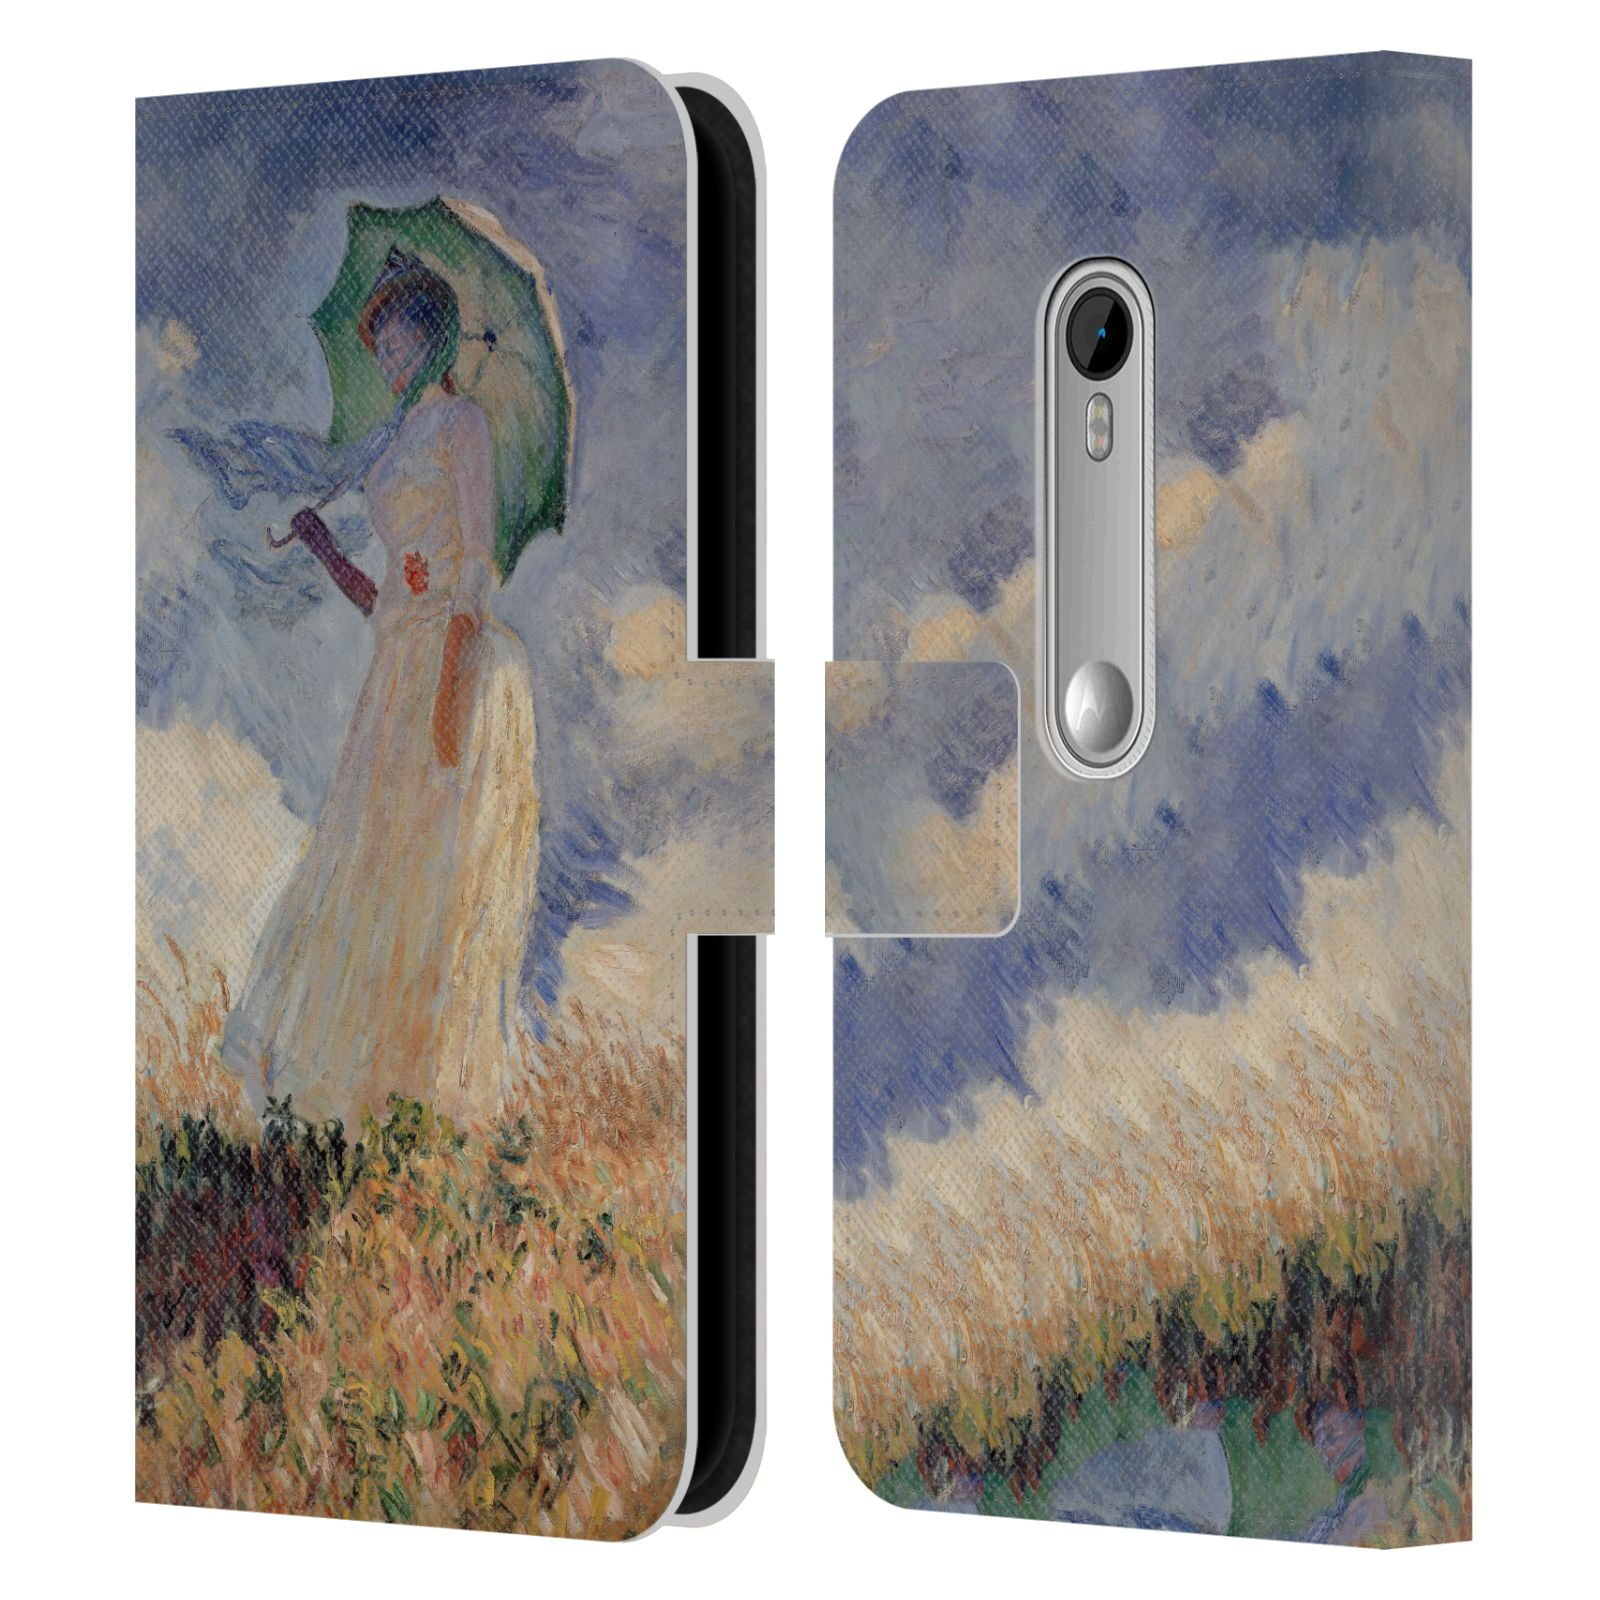 OFFICIAL-MASTERS-COLLECTION-PAINTINGS-2-LEATHER-BOOK-CASE-FOR-MOTOROLA-PHONES